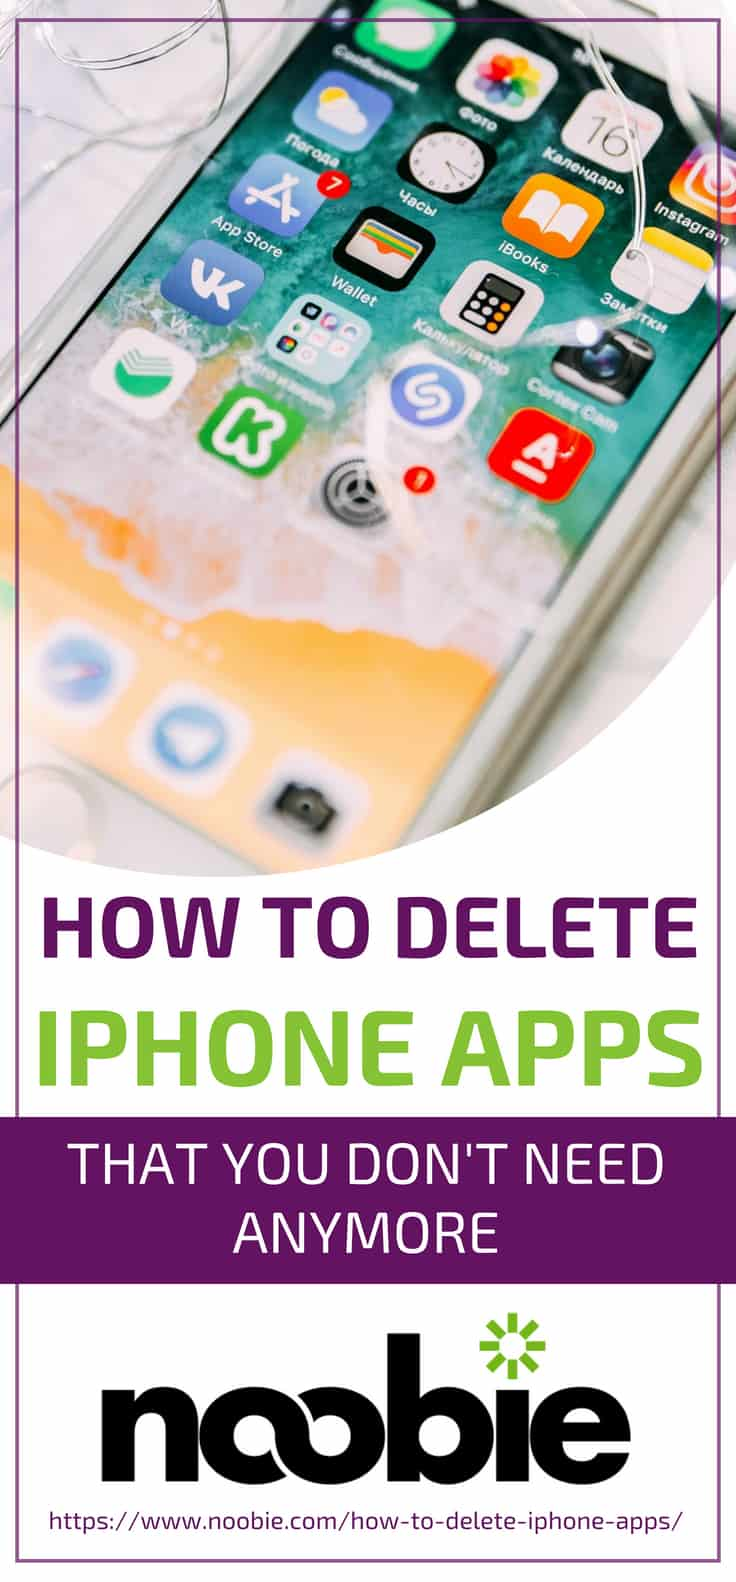 How To Delete Iphone Apps That You Don't Need Anymore | how to permanently delete apps from iPhone | how to delete apps on iPhone permanently